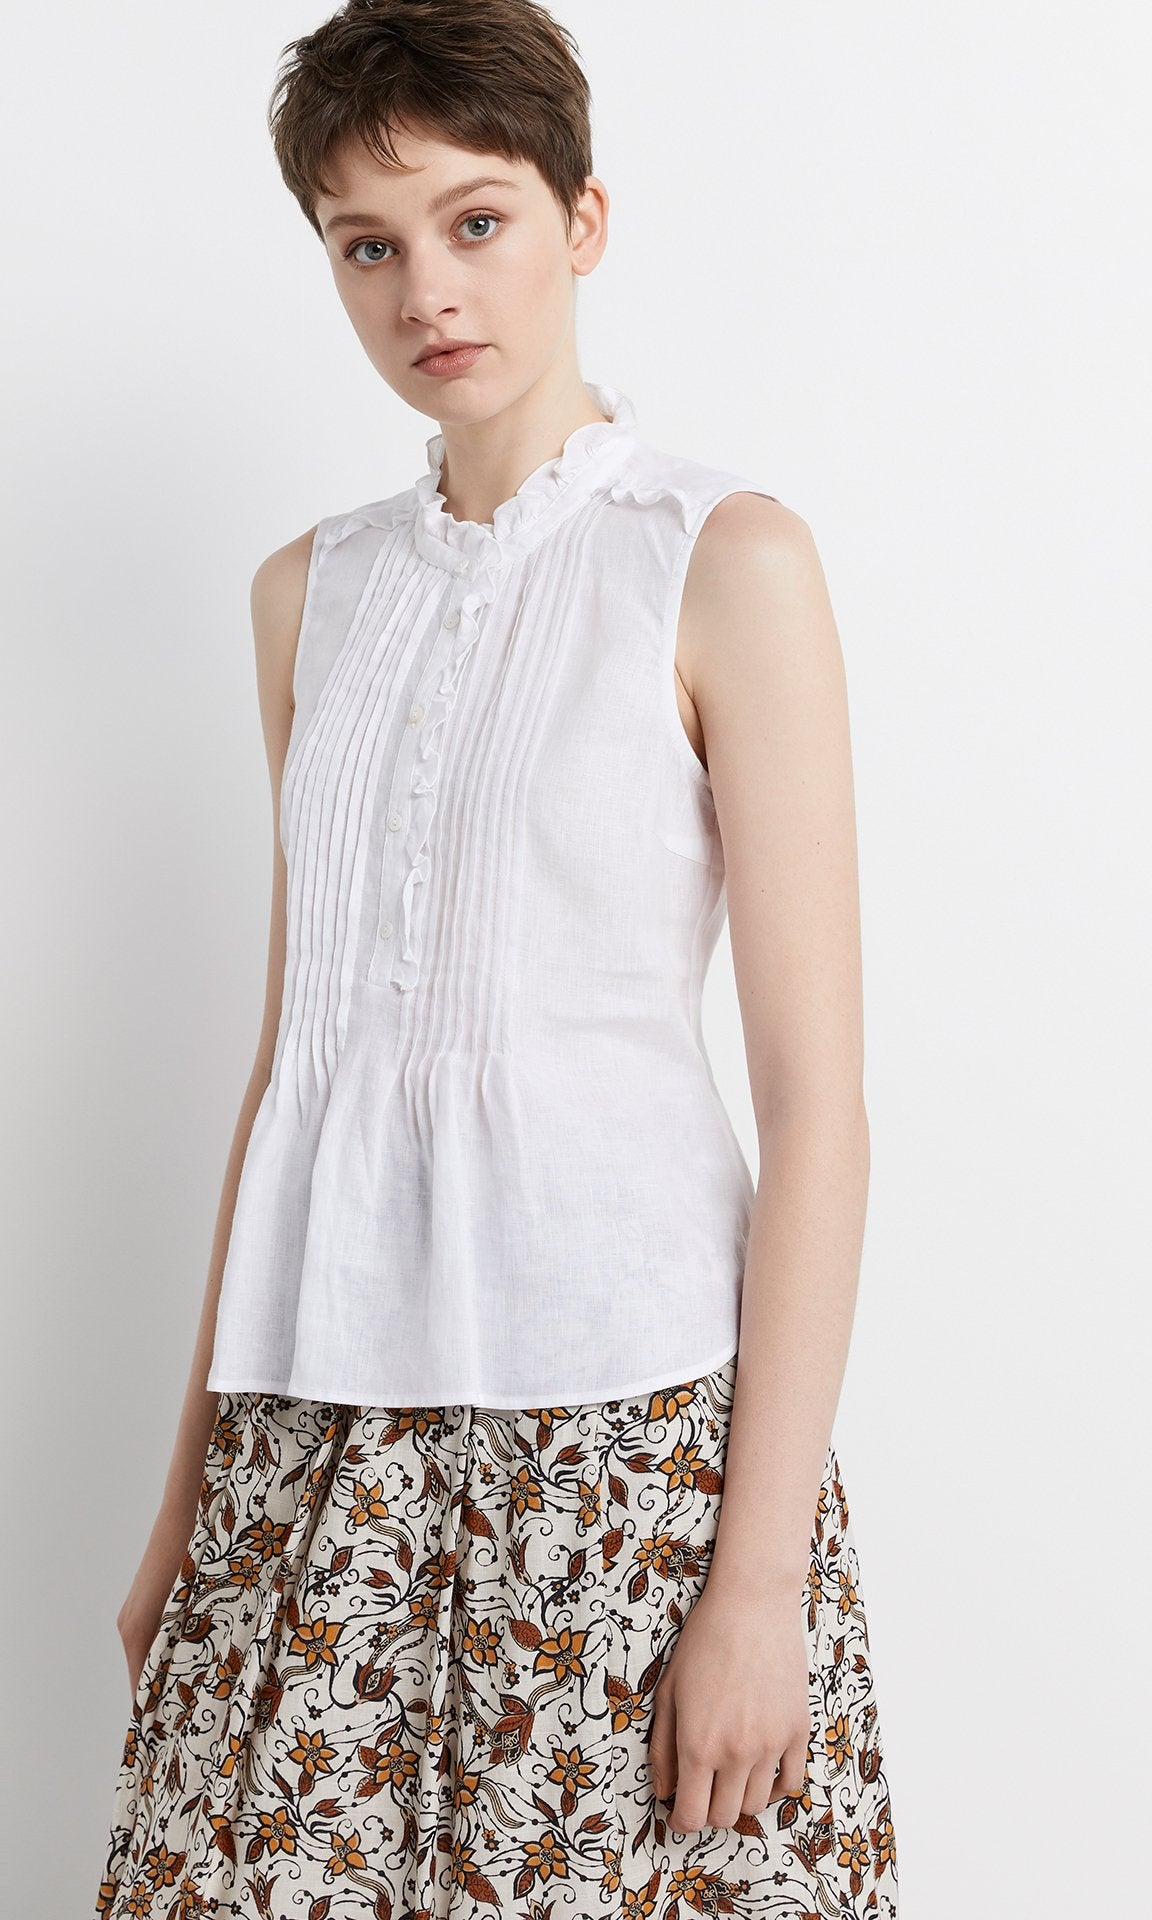 Rocca Sleeveless Blouse - White